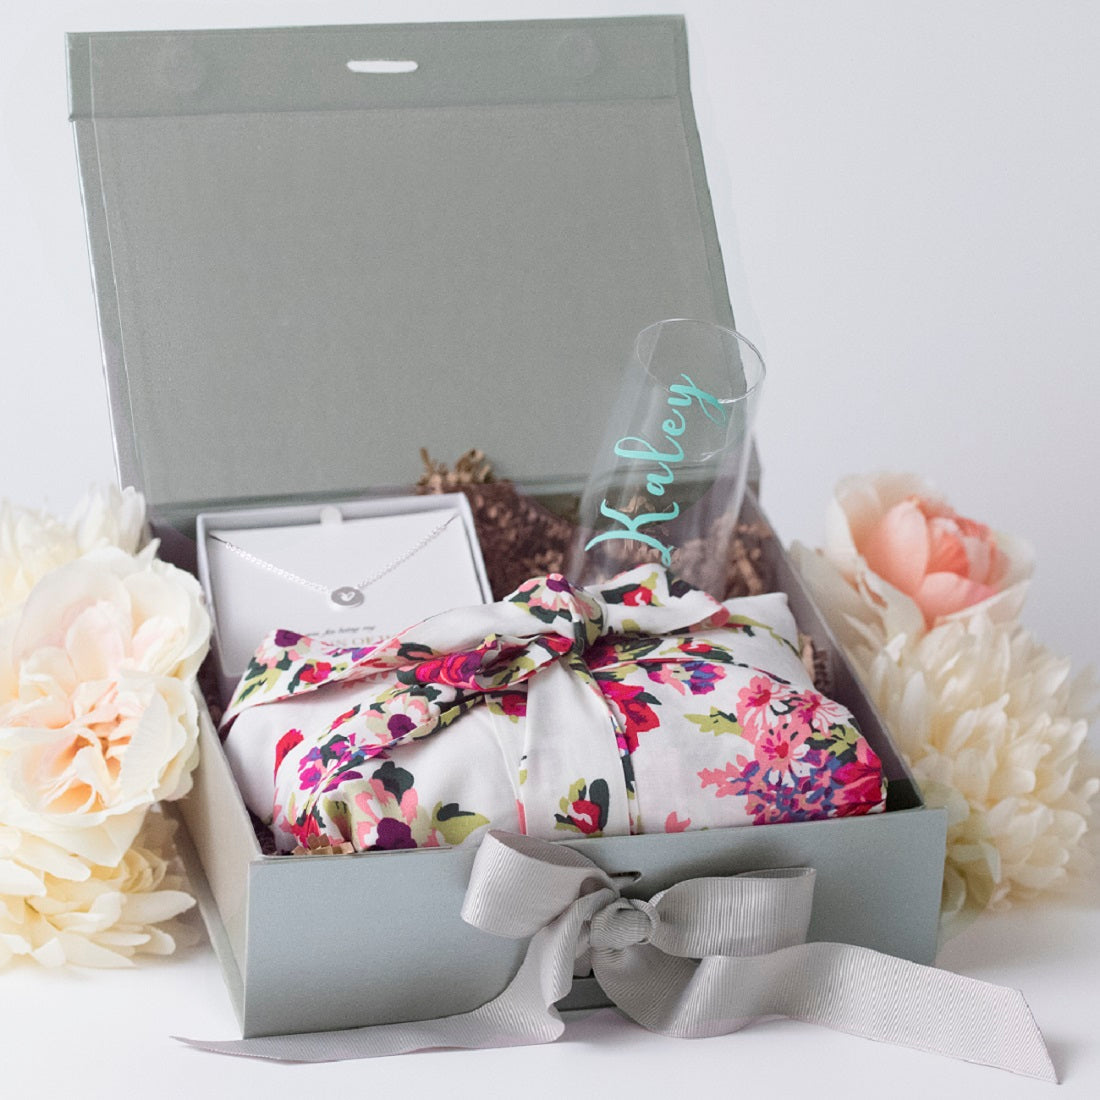 61 Of The Best Bridesmaid Gift Ideas For 2021 From 10 Bridesmaid Gifts Boutique